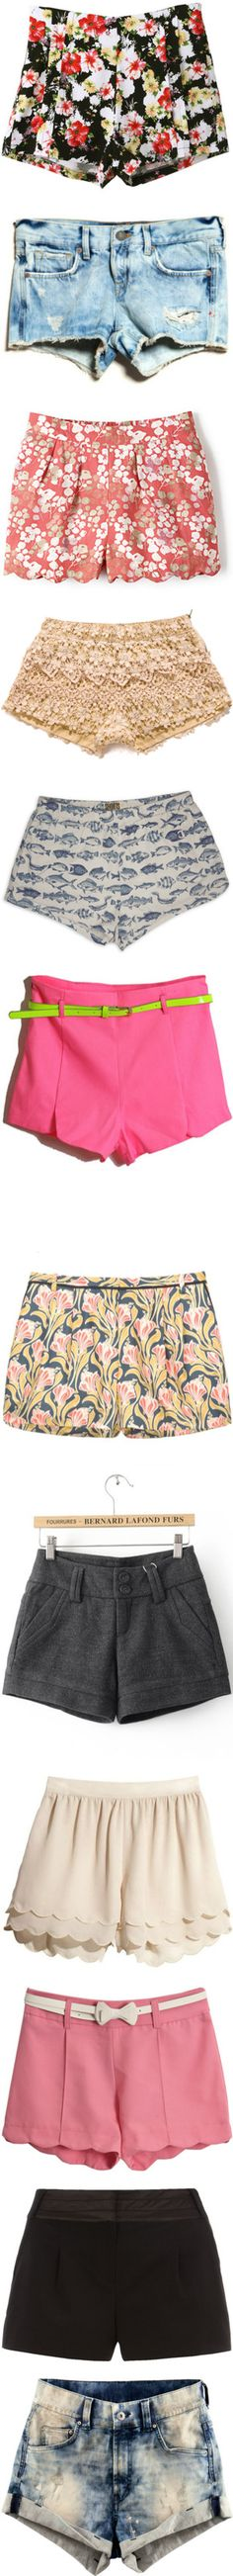 """""""pretty shorts."""" by diana1990 ❤ liked on Polyvore"""